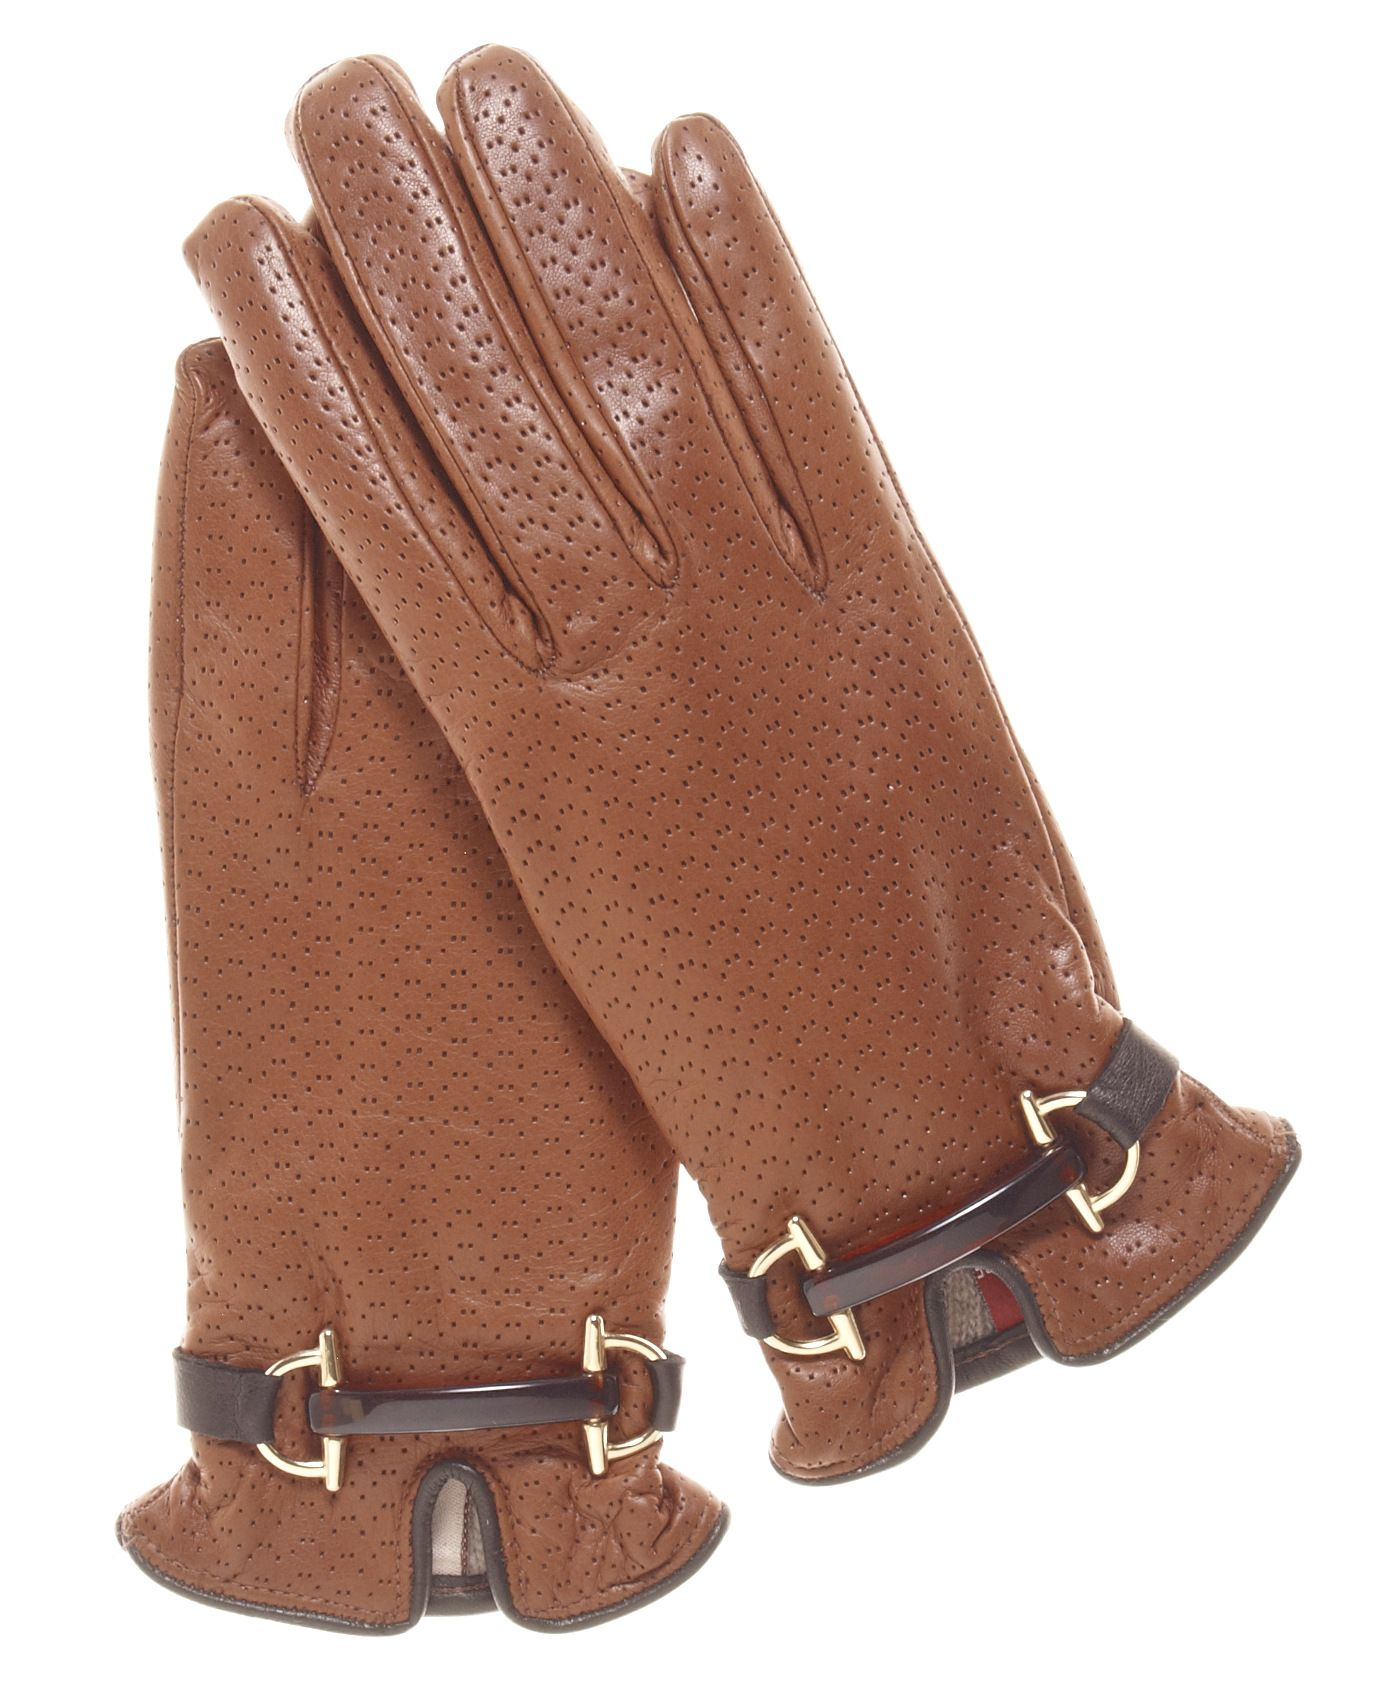 Pittards ladies leather gloves - Women S Cashmere Lined Leather Gloves With Bridle Strap By Fratelli Orsini Free Usa Shipping At